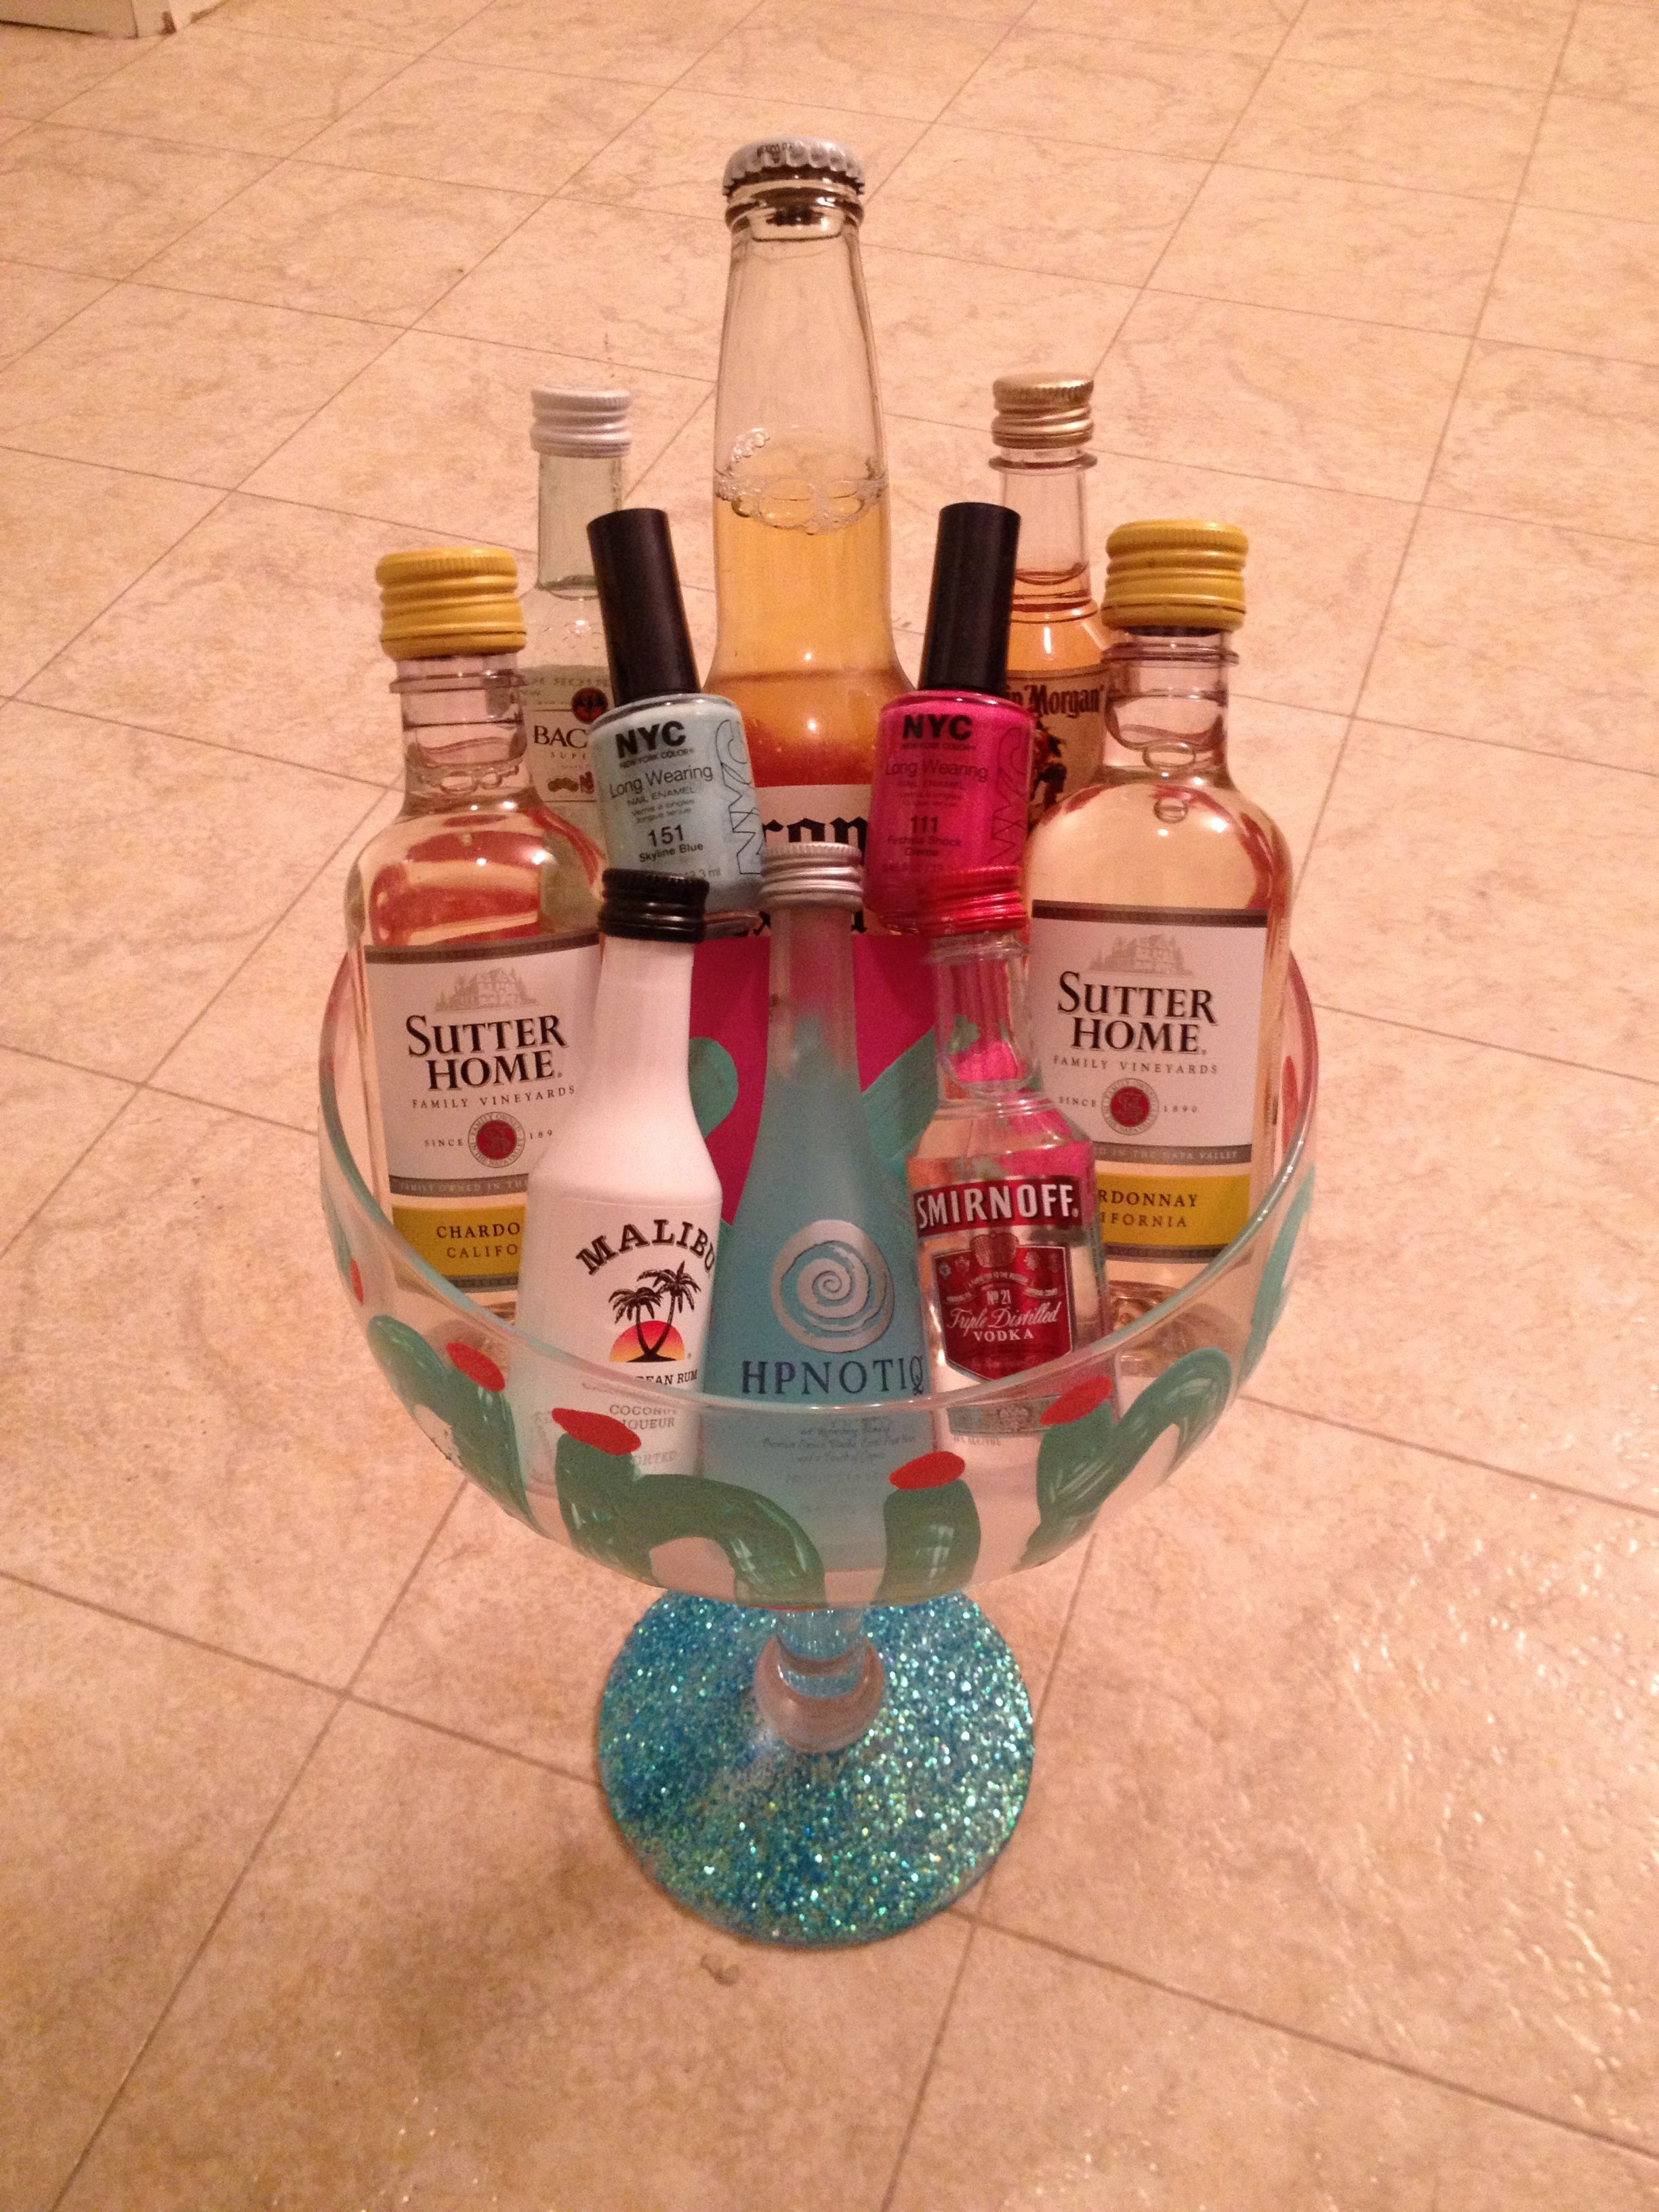 Pin By Liz Widun On Crafts Birthday Gifts For Girls Alcohol Gift Baskets 21st Birthday Gifts